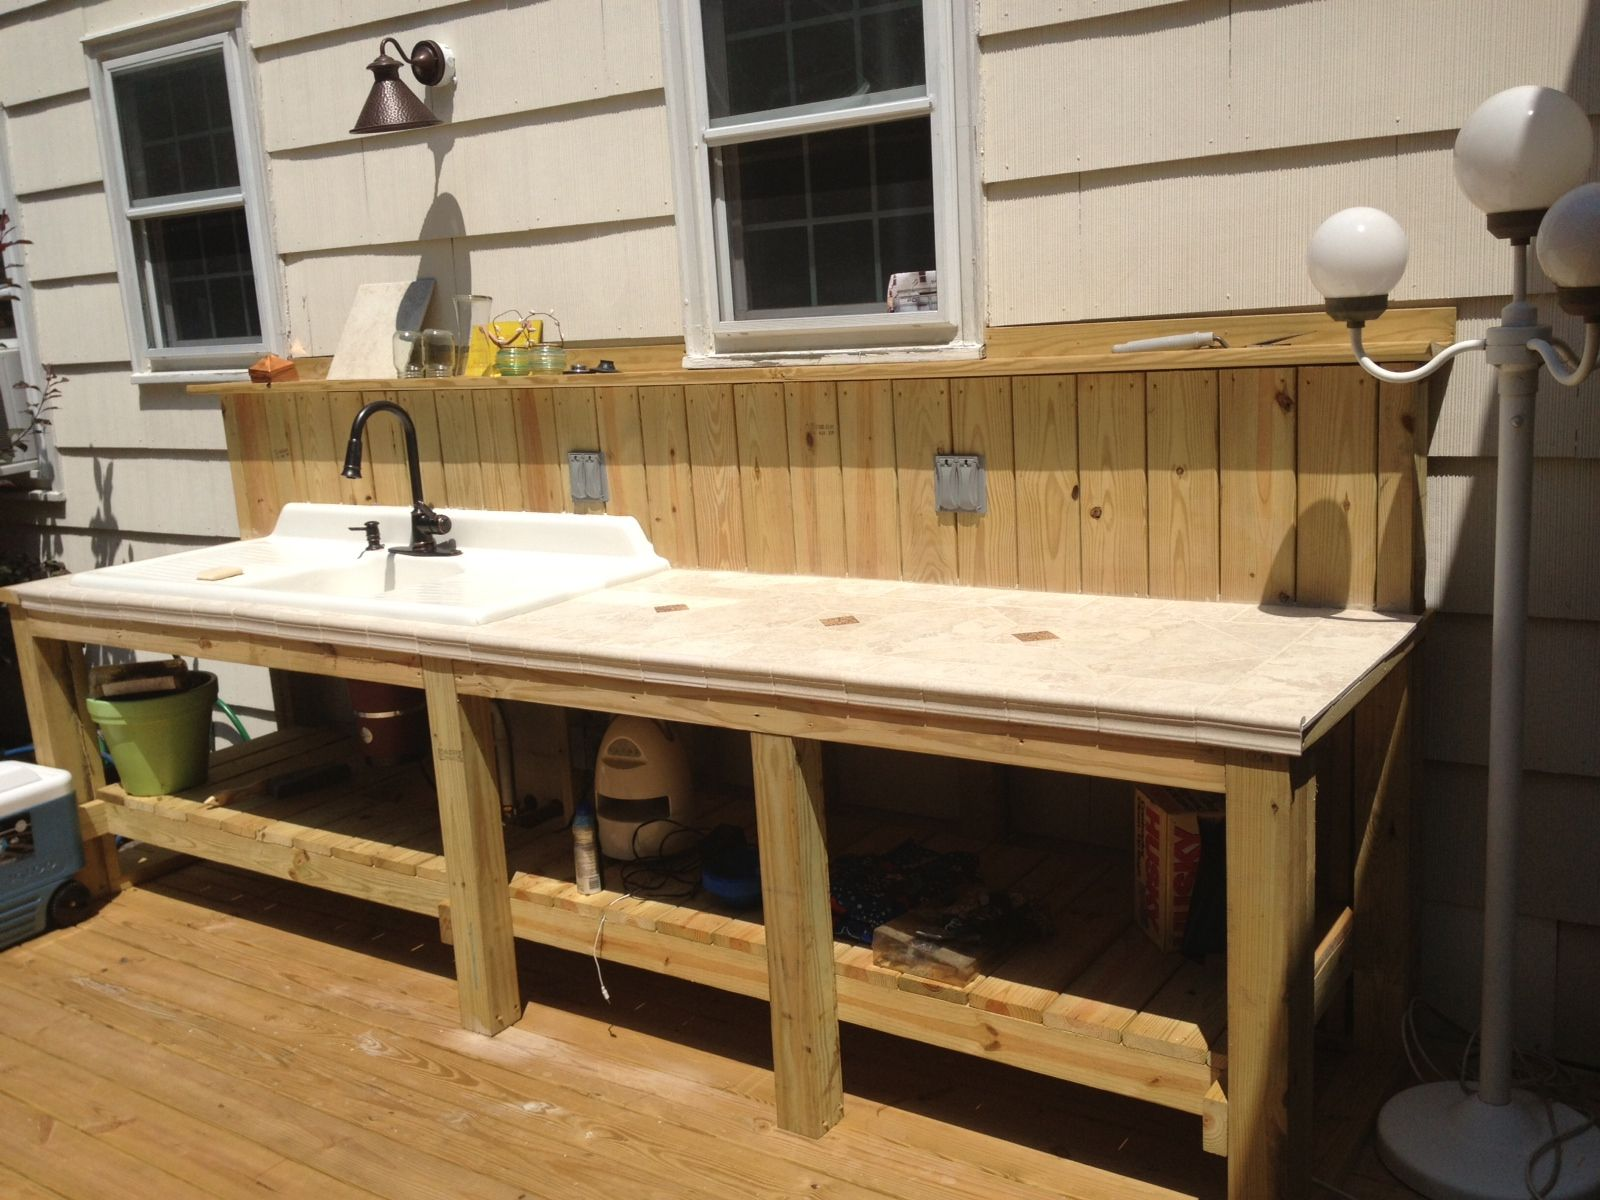 outdoor sink and countertop area- complete with garbage disposal